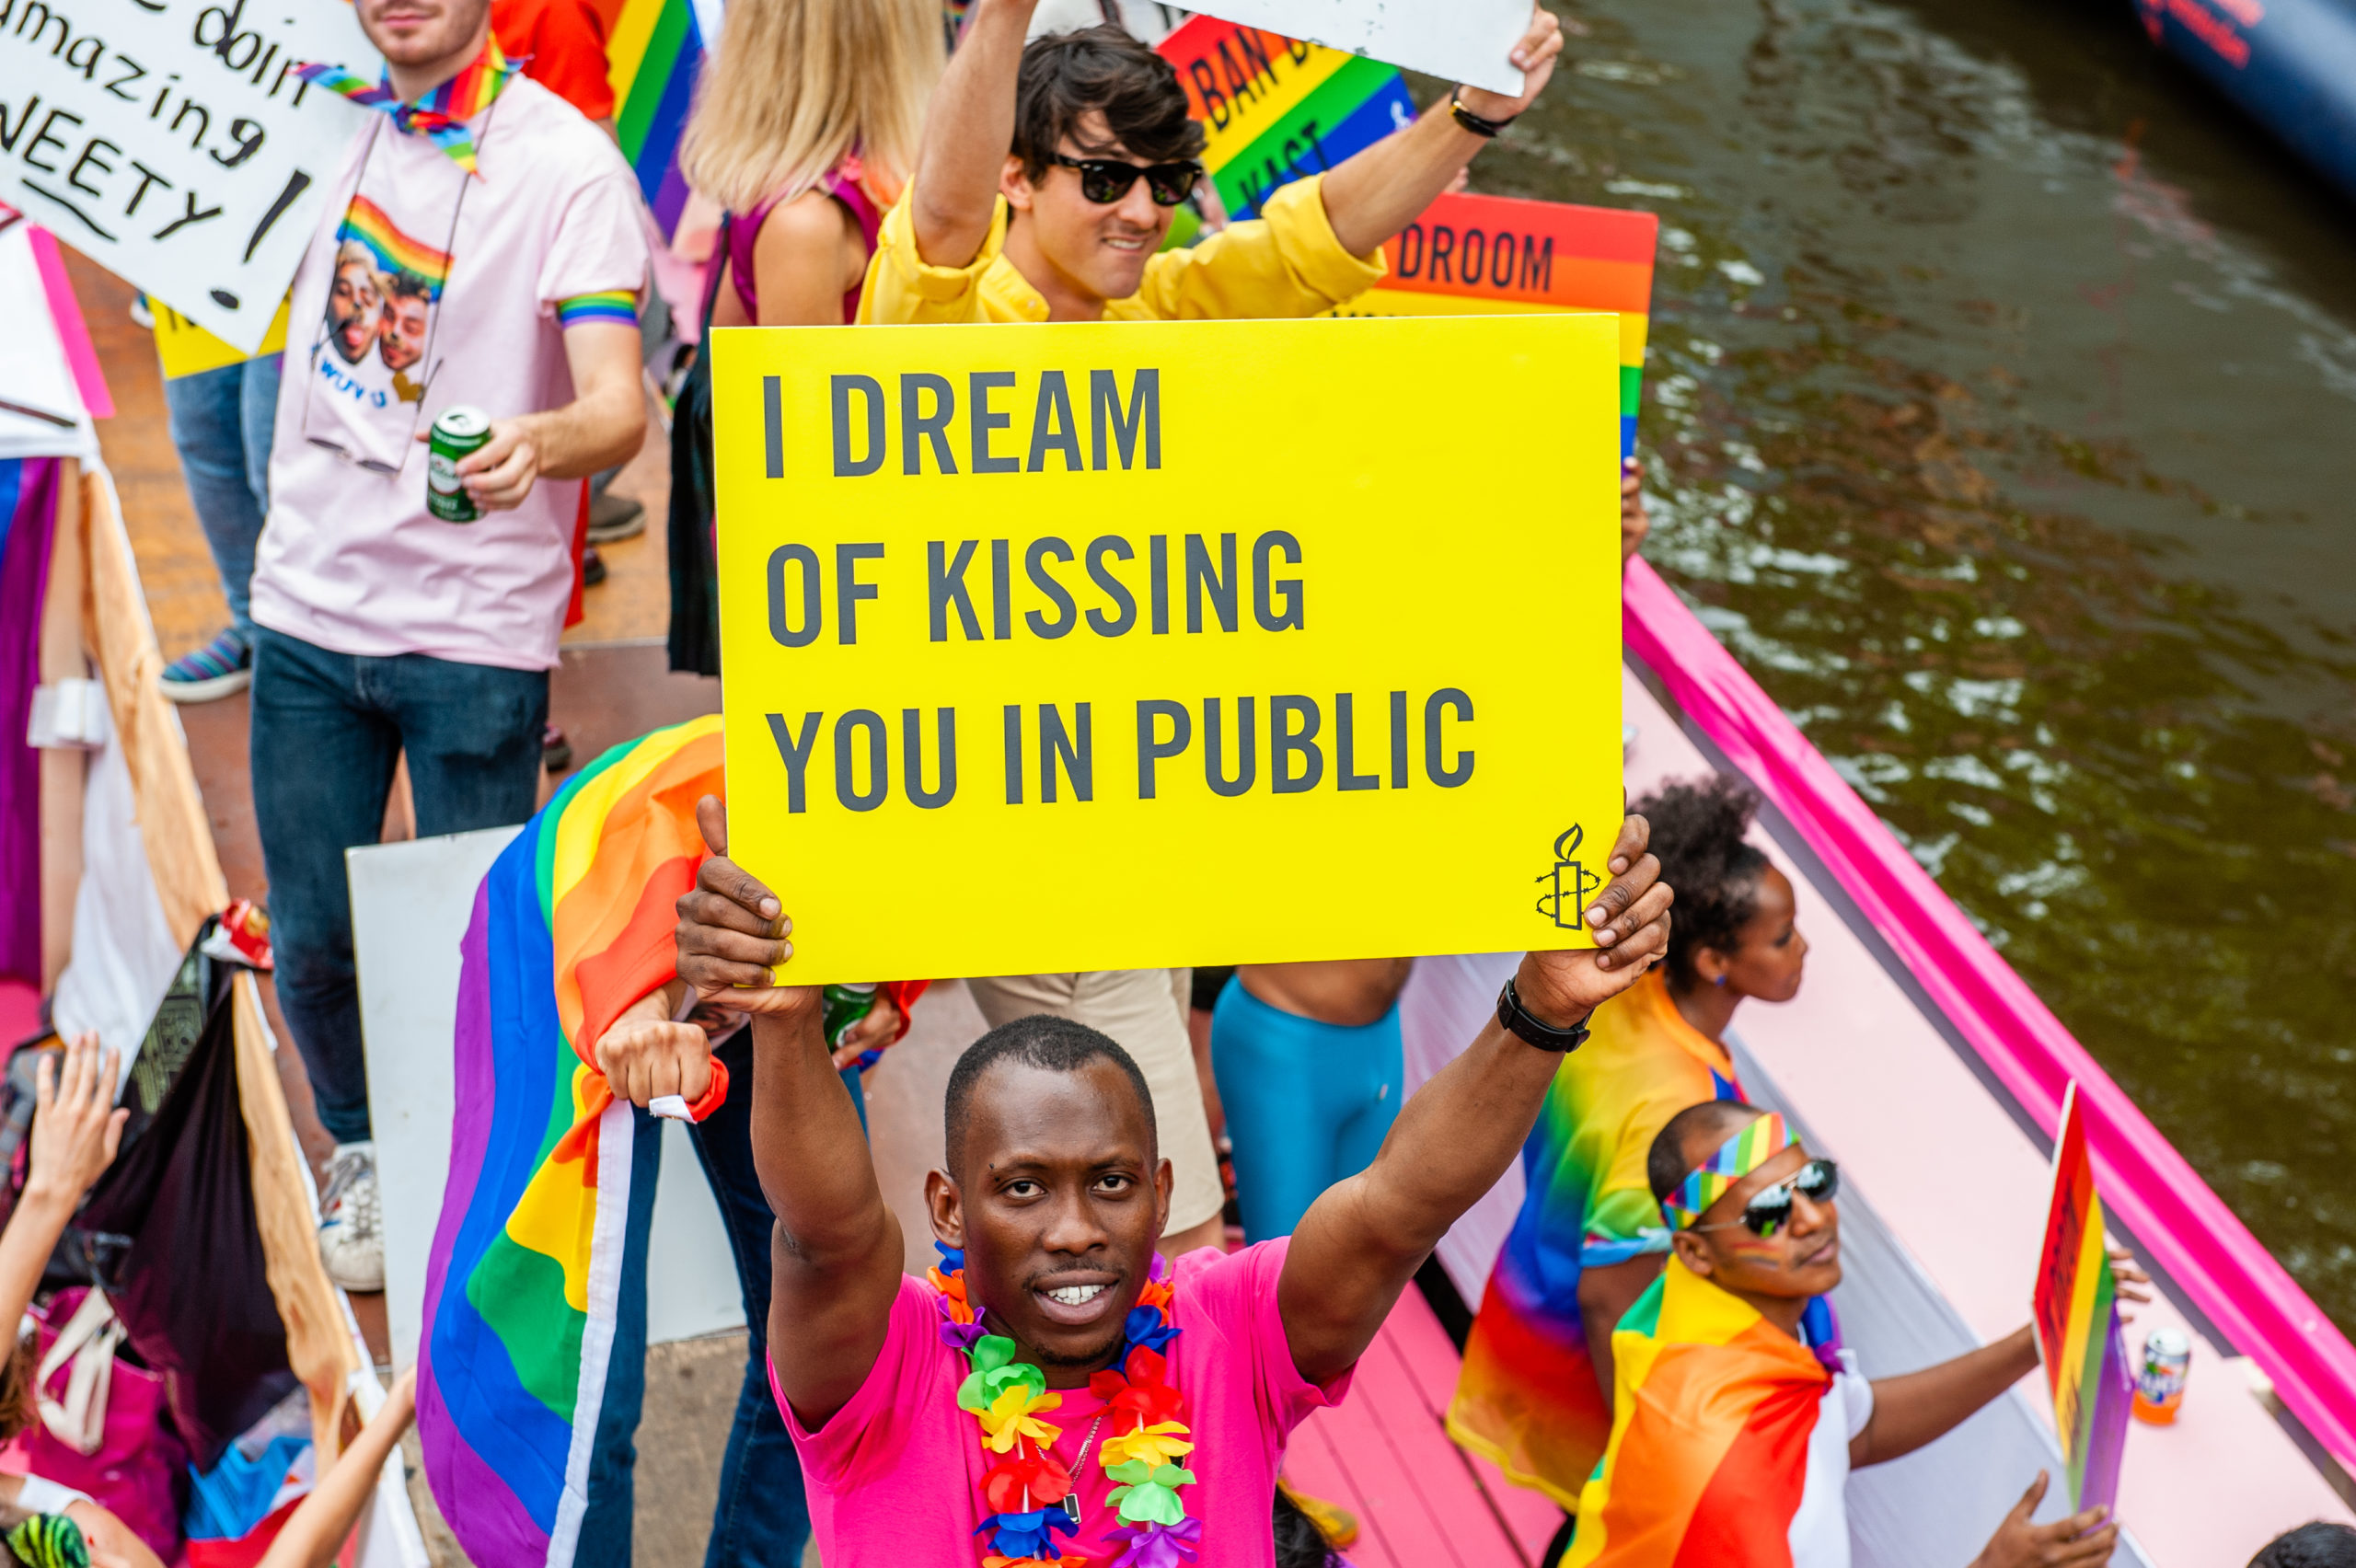 The Netherlands just emphatically voted to put LGBT+ rights at the very forefront of the constitution